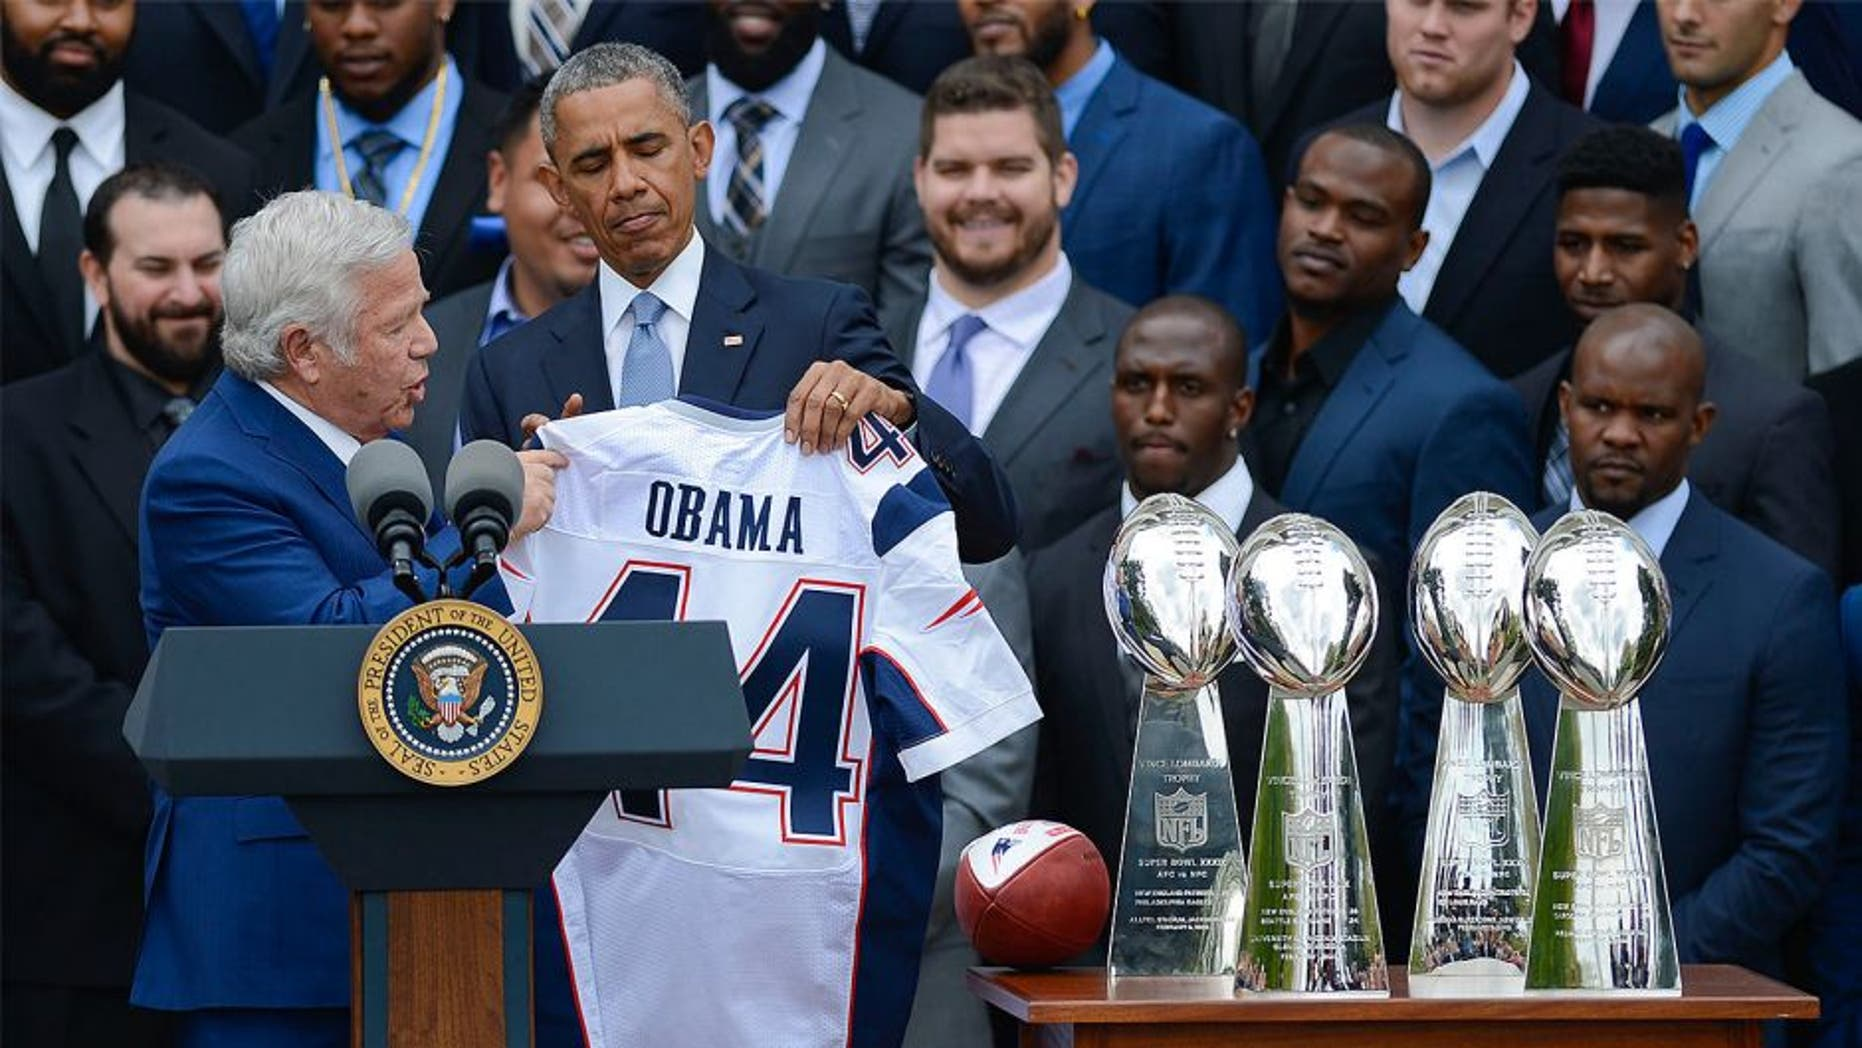 WASHINGTON, DC - APRIL 23: New England Patriots owner Robert Kraft speaks as President Barack Obama honors Superbowl Champions New England Patriots at the White House on April 23, 2015 in Washington, DC. (Photo by Riccardo S. Savi/WireImage)